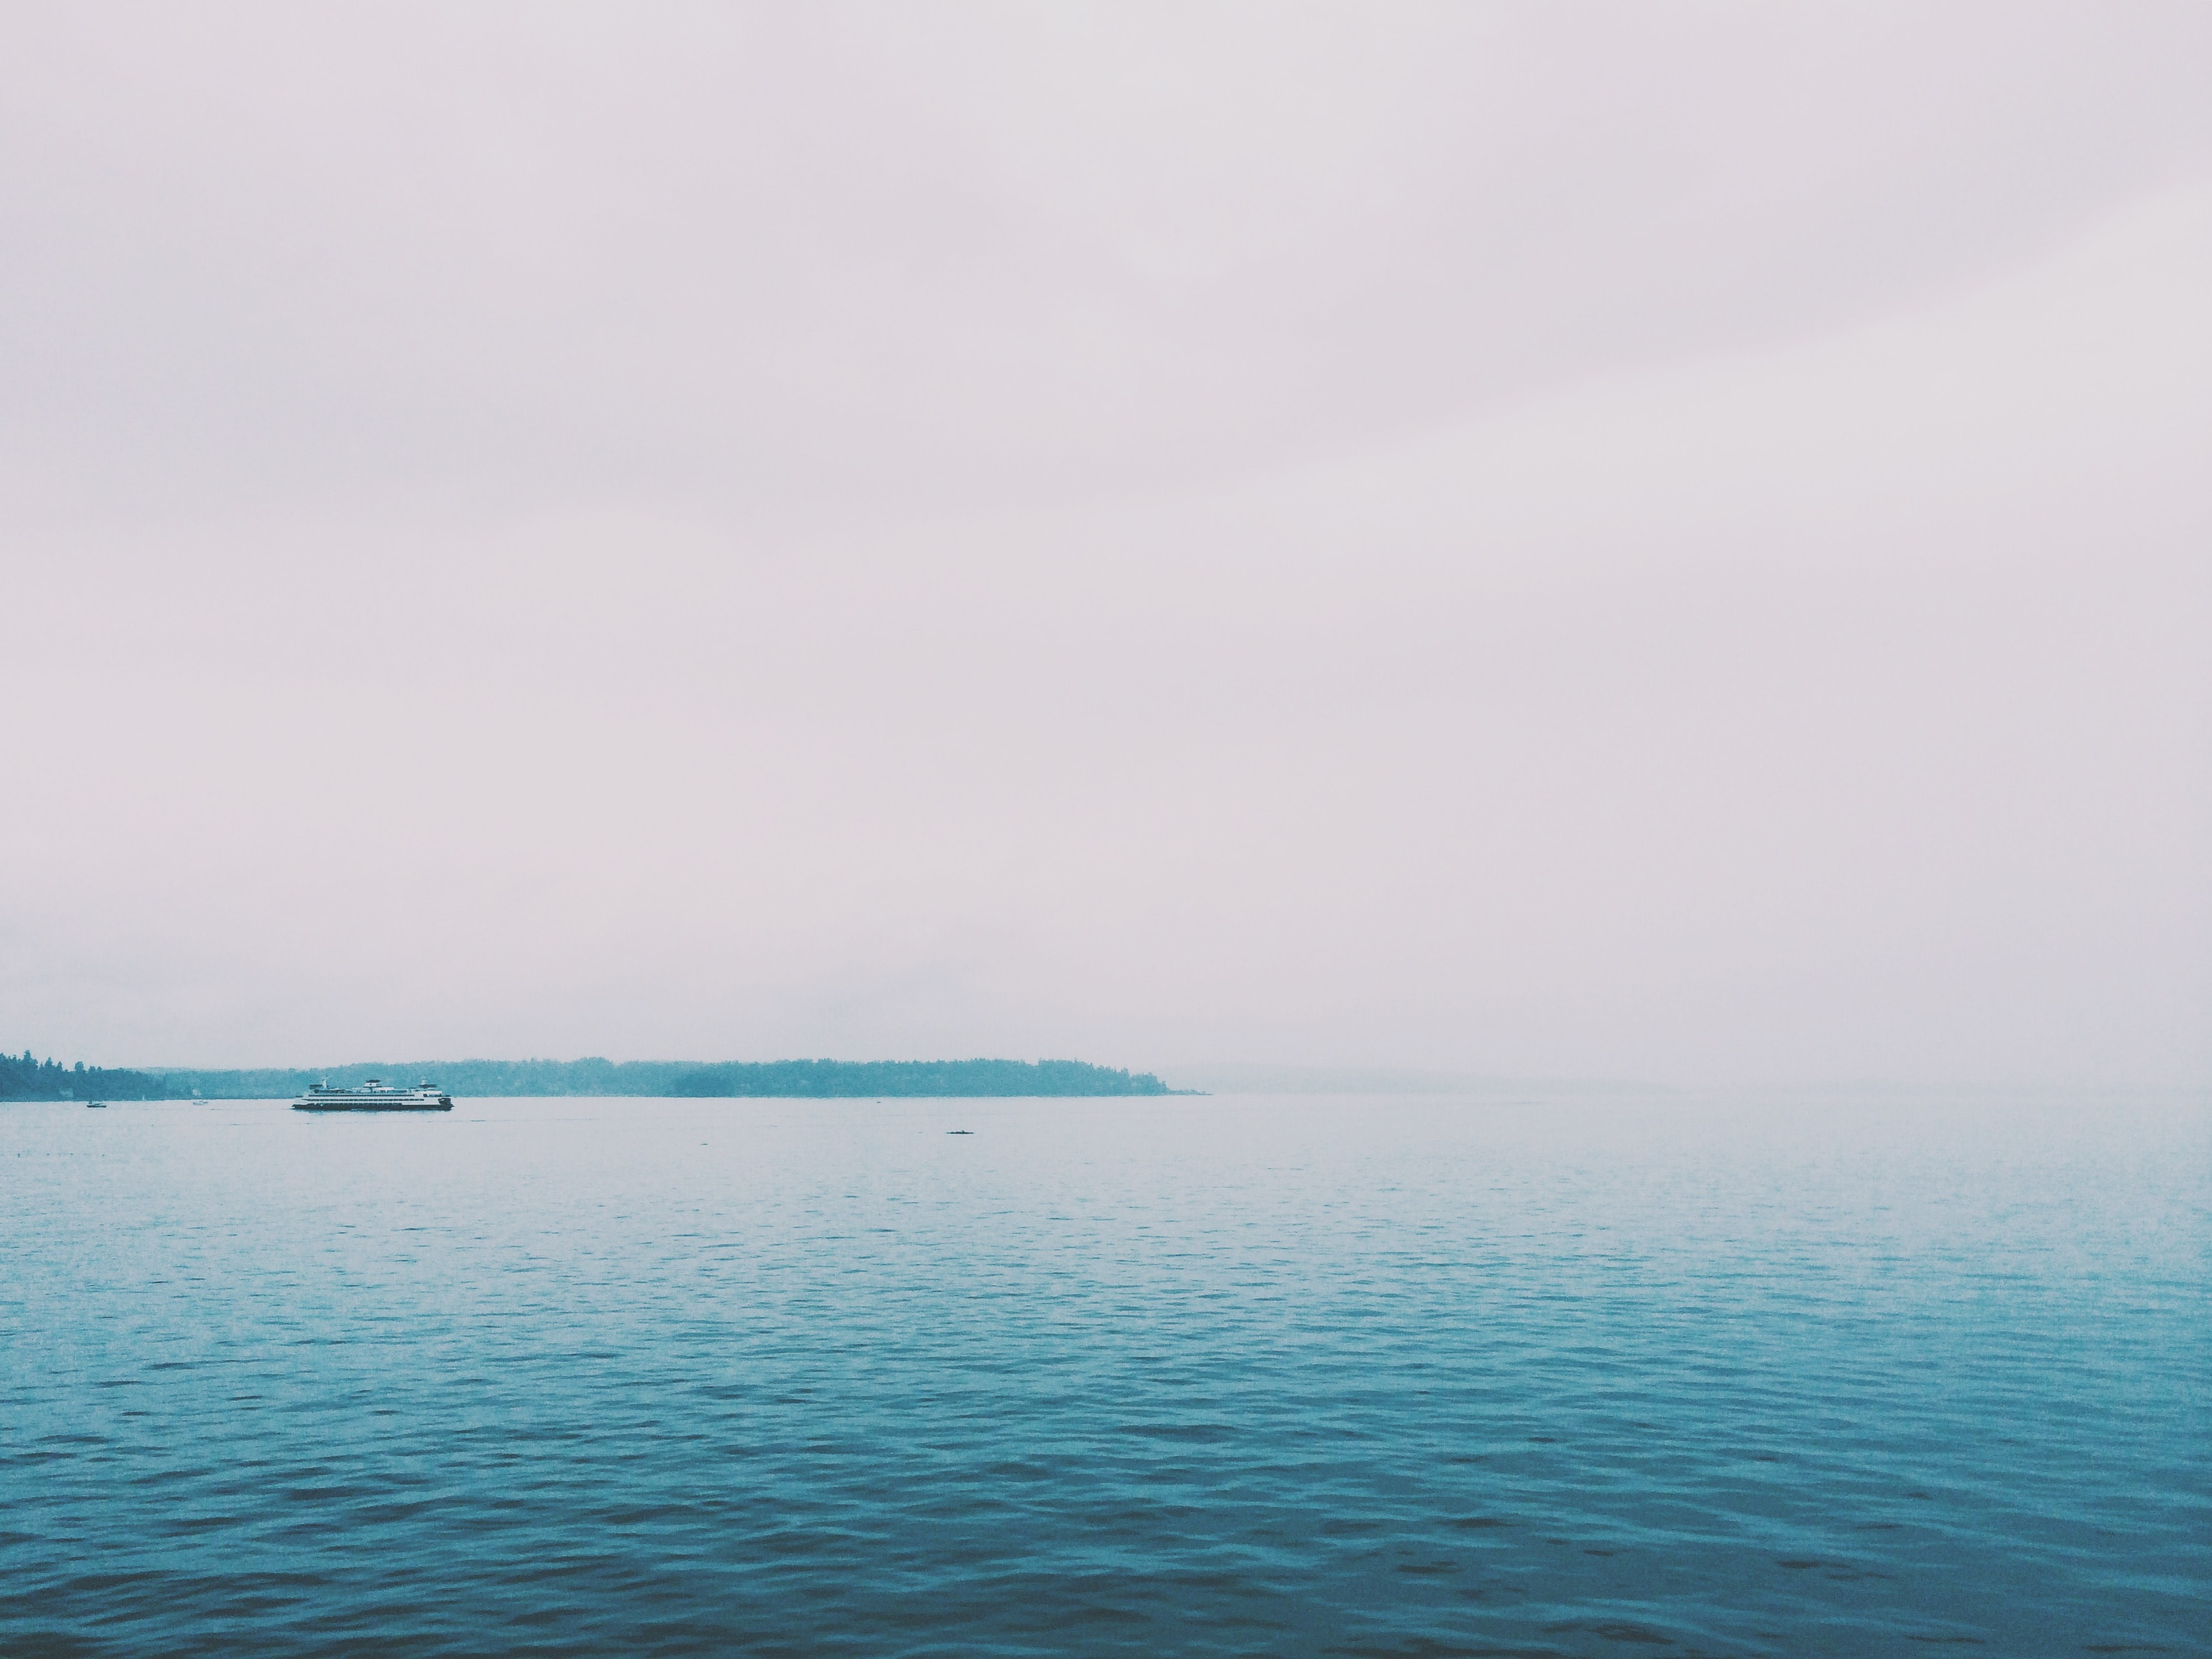 Boat passes through calm ripples on a foggy day on the water